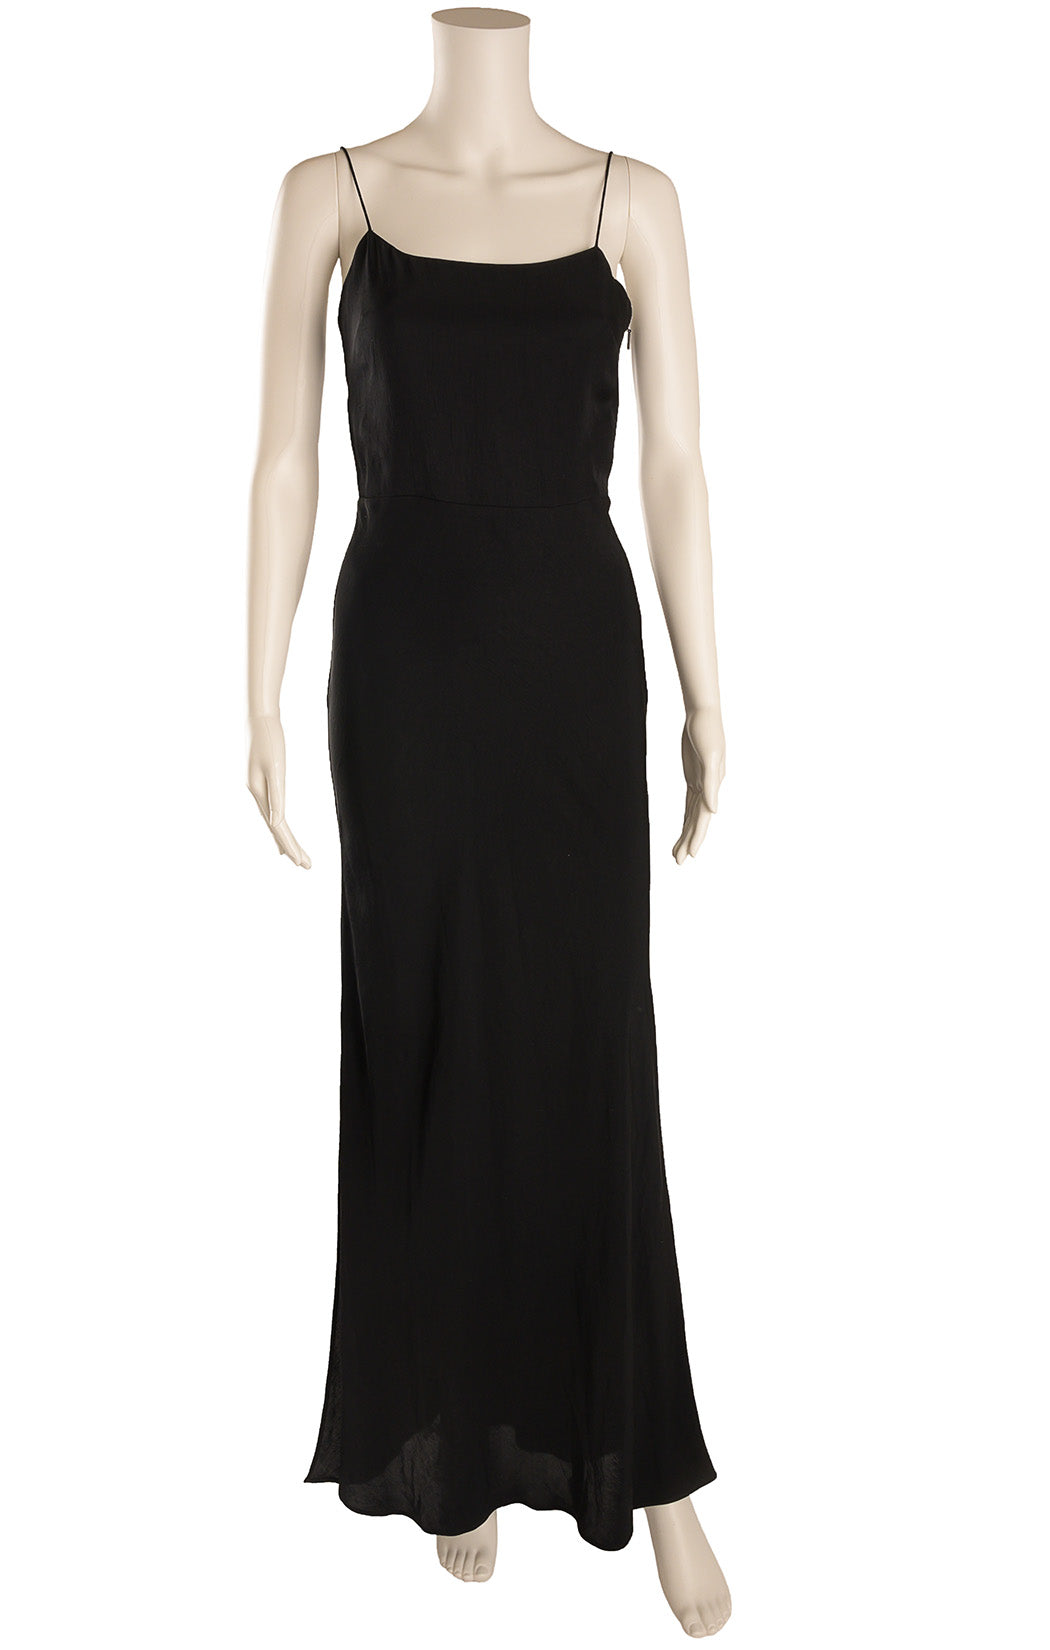 Front view of GREY BY JASON WU with tags Long dress Size: 2